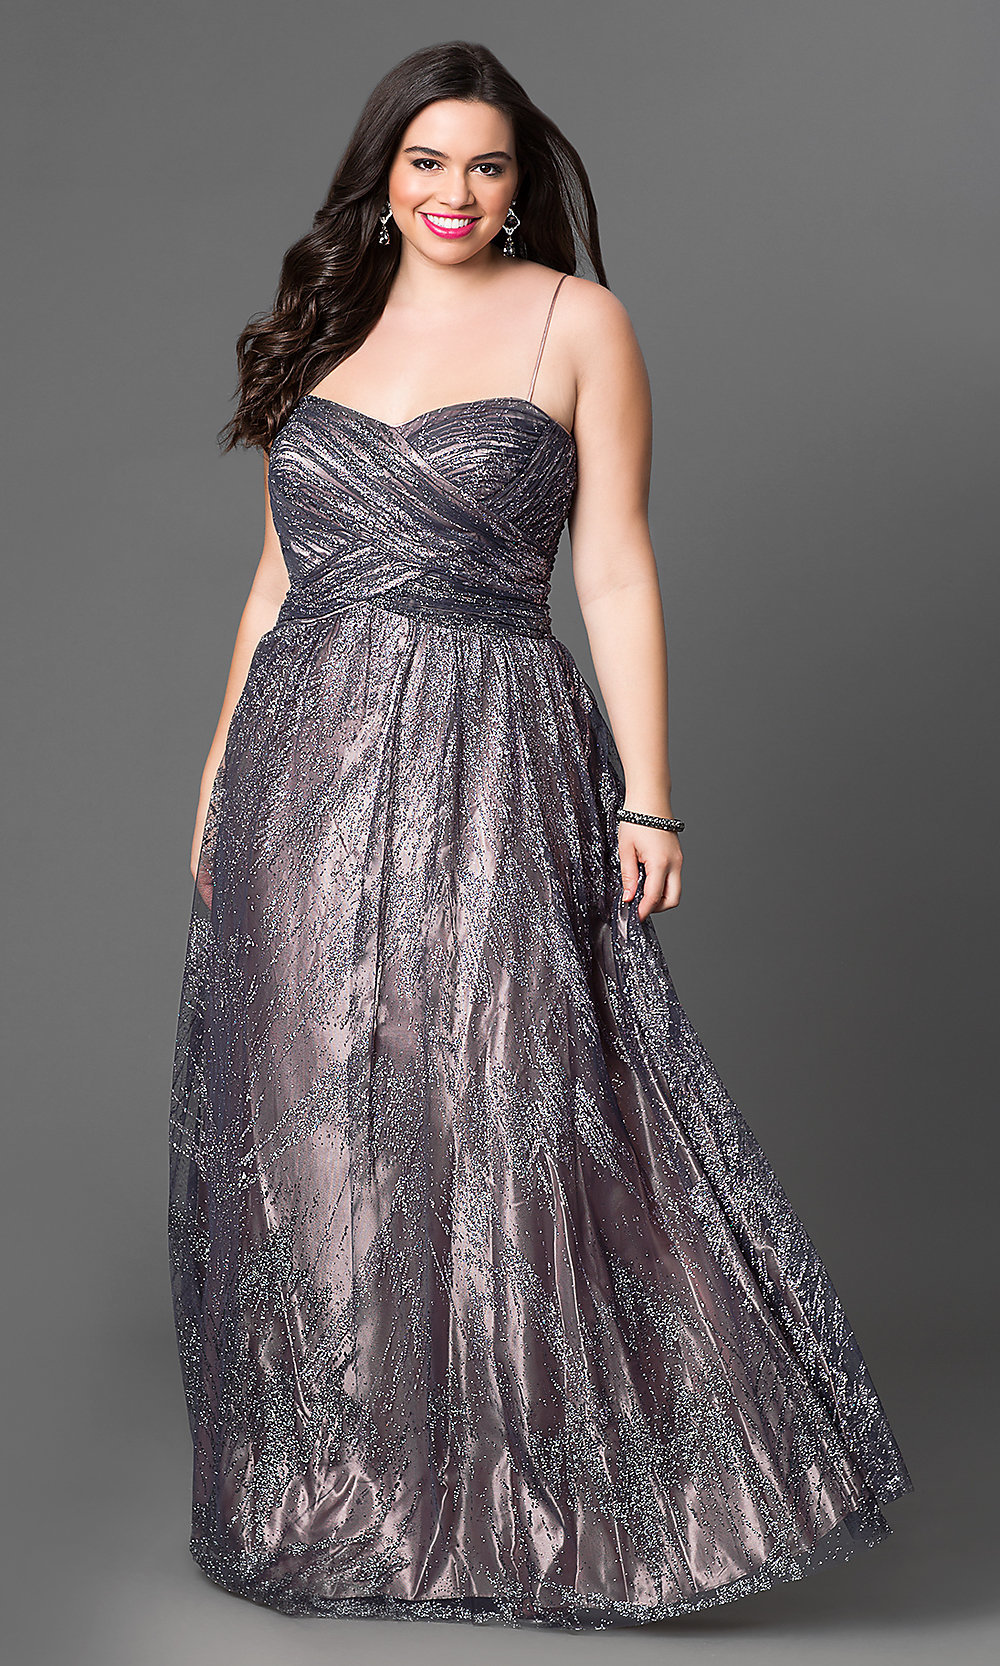 Plus Sized Strapless Evening Gowns, Prom Dresses